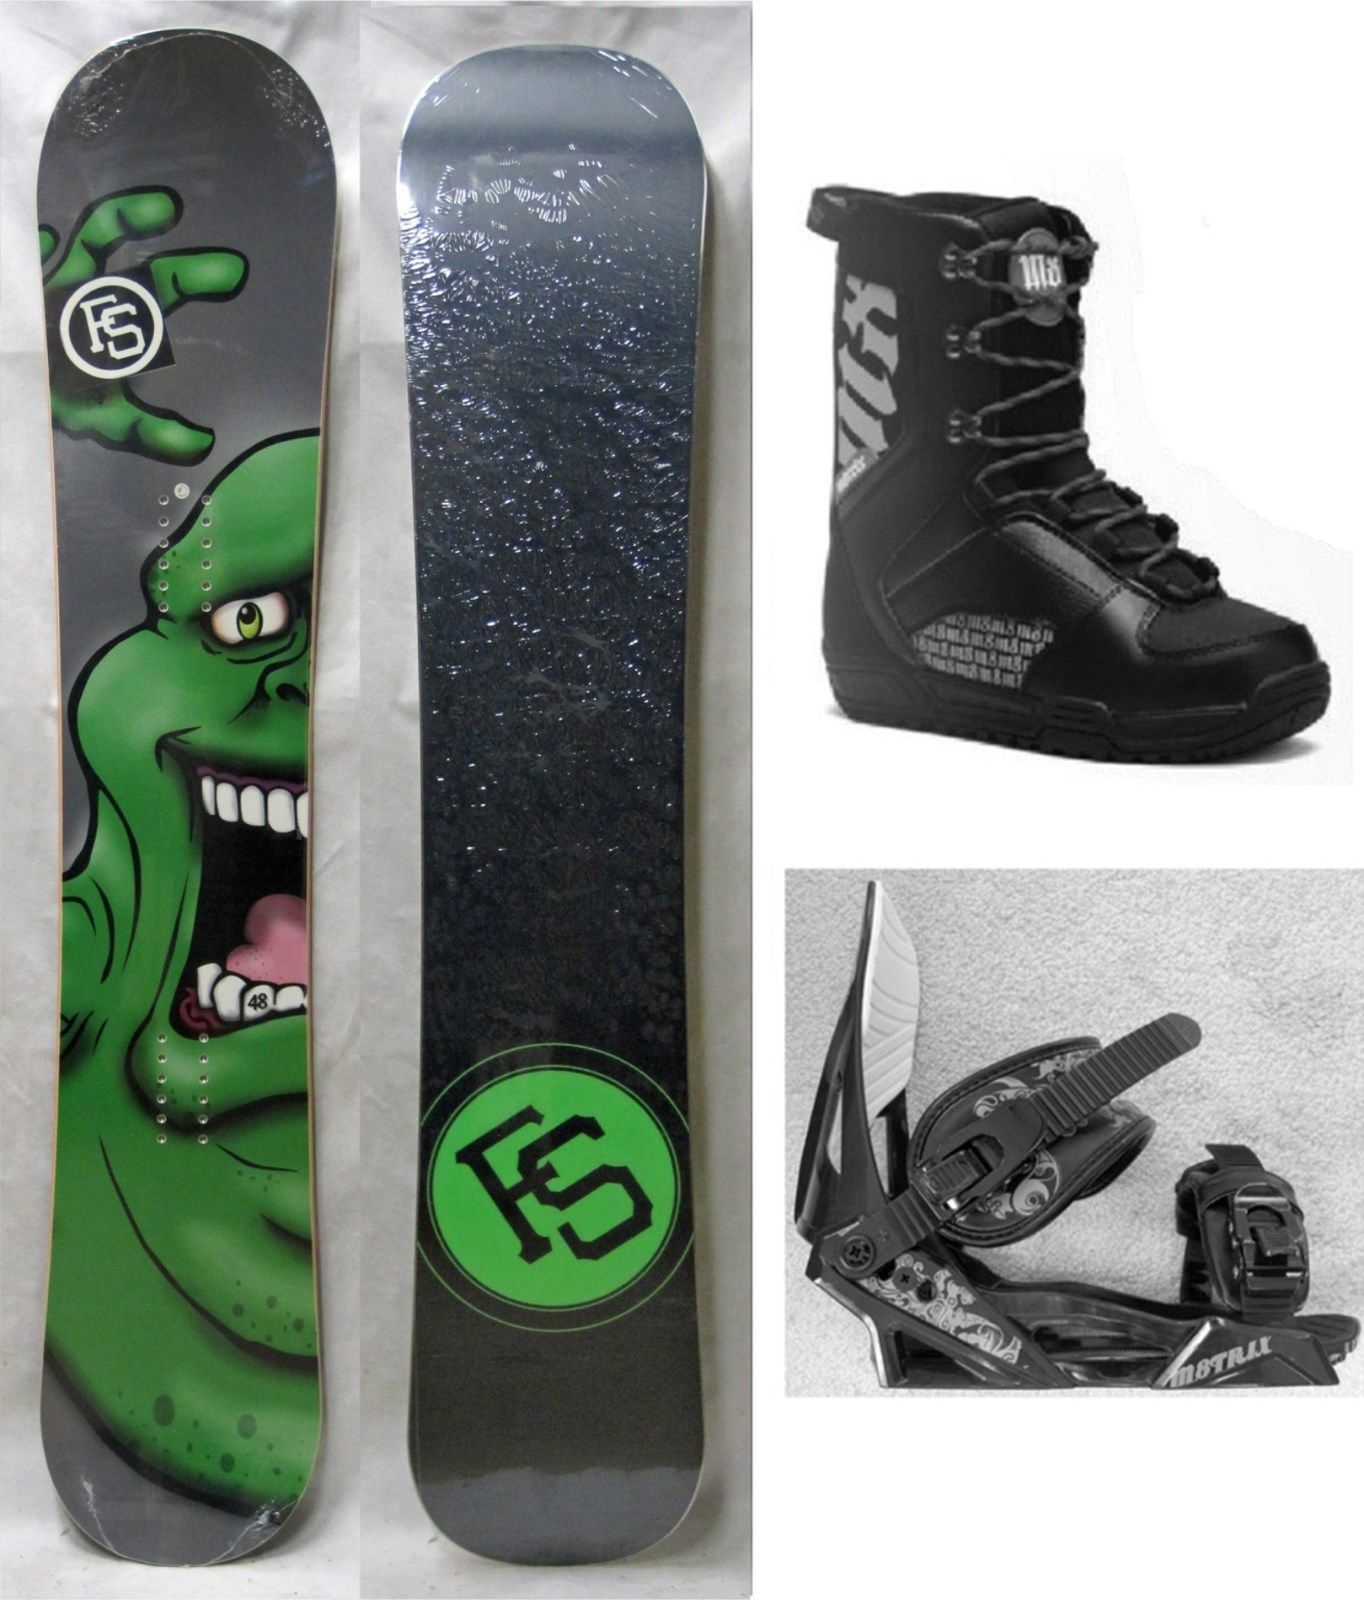 New Fs Snowboard, Bindings, Boots Package